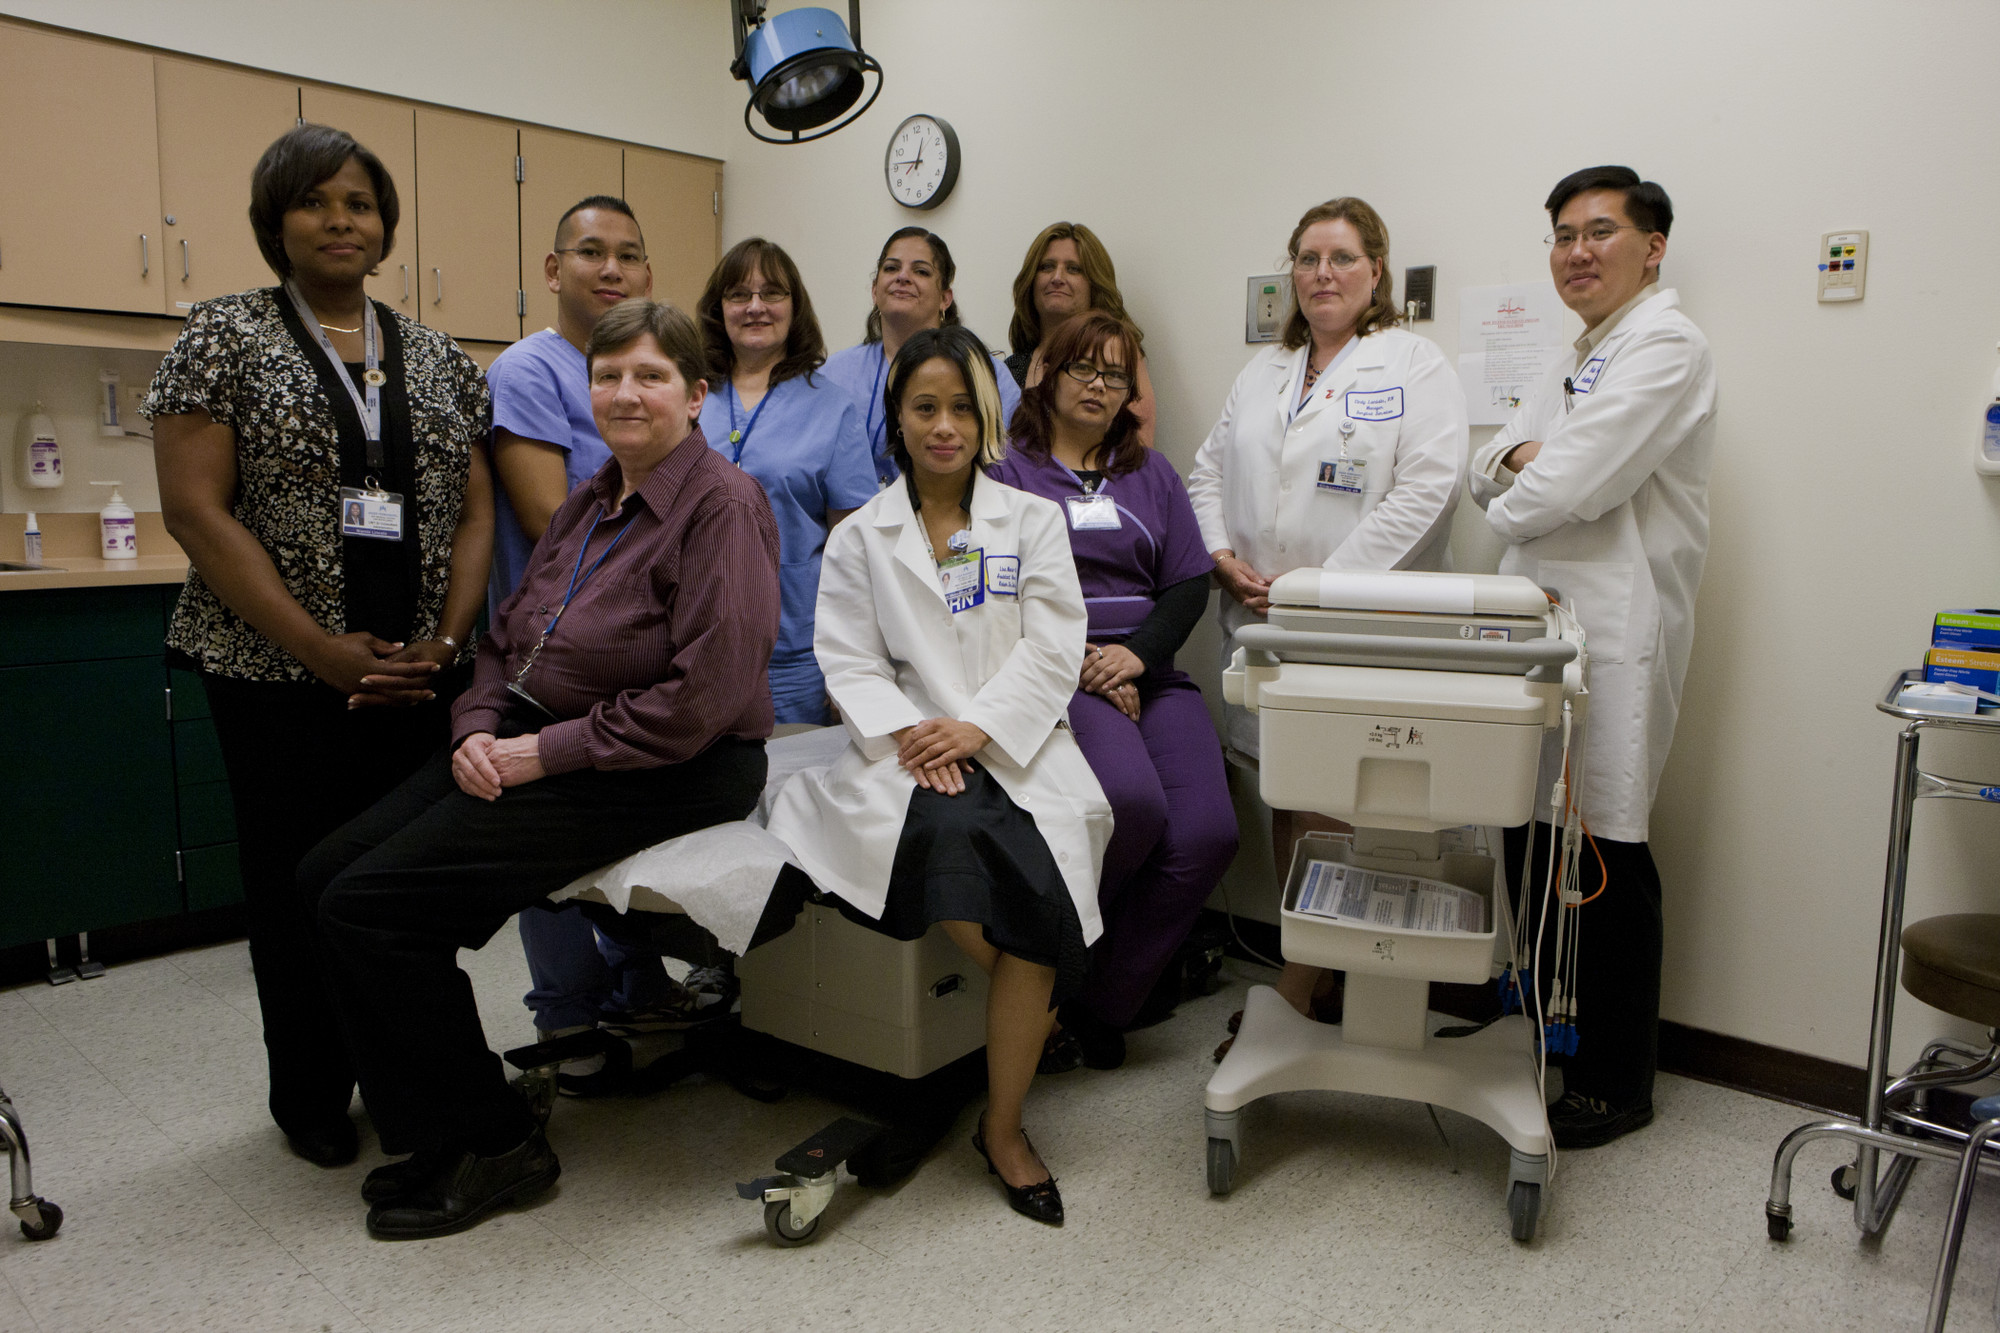 a group of health care providers posing in a hospital room